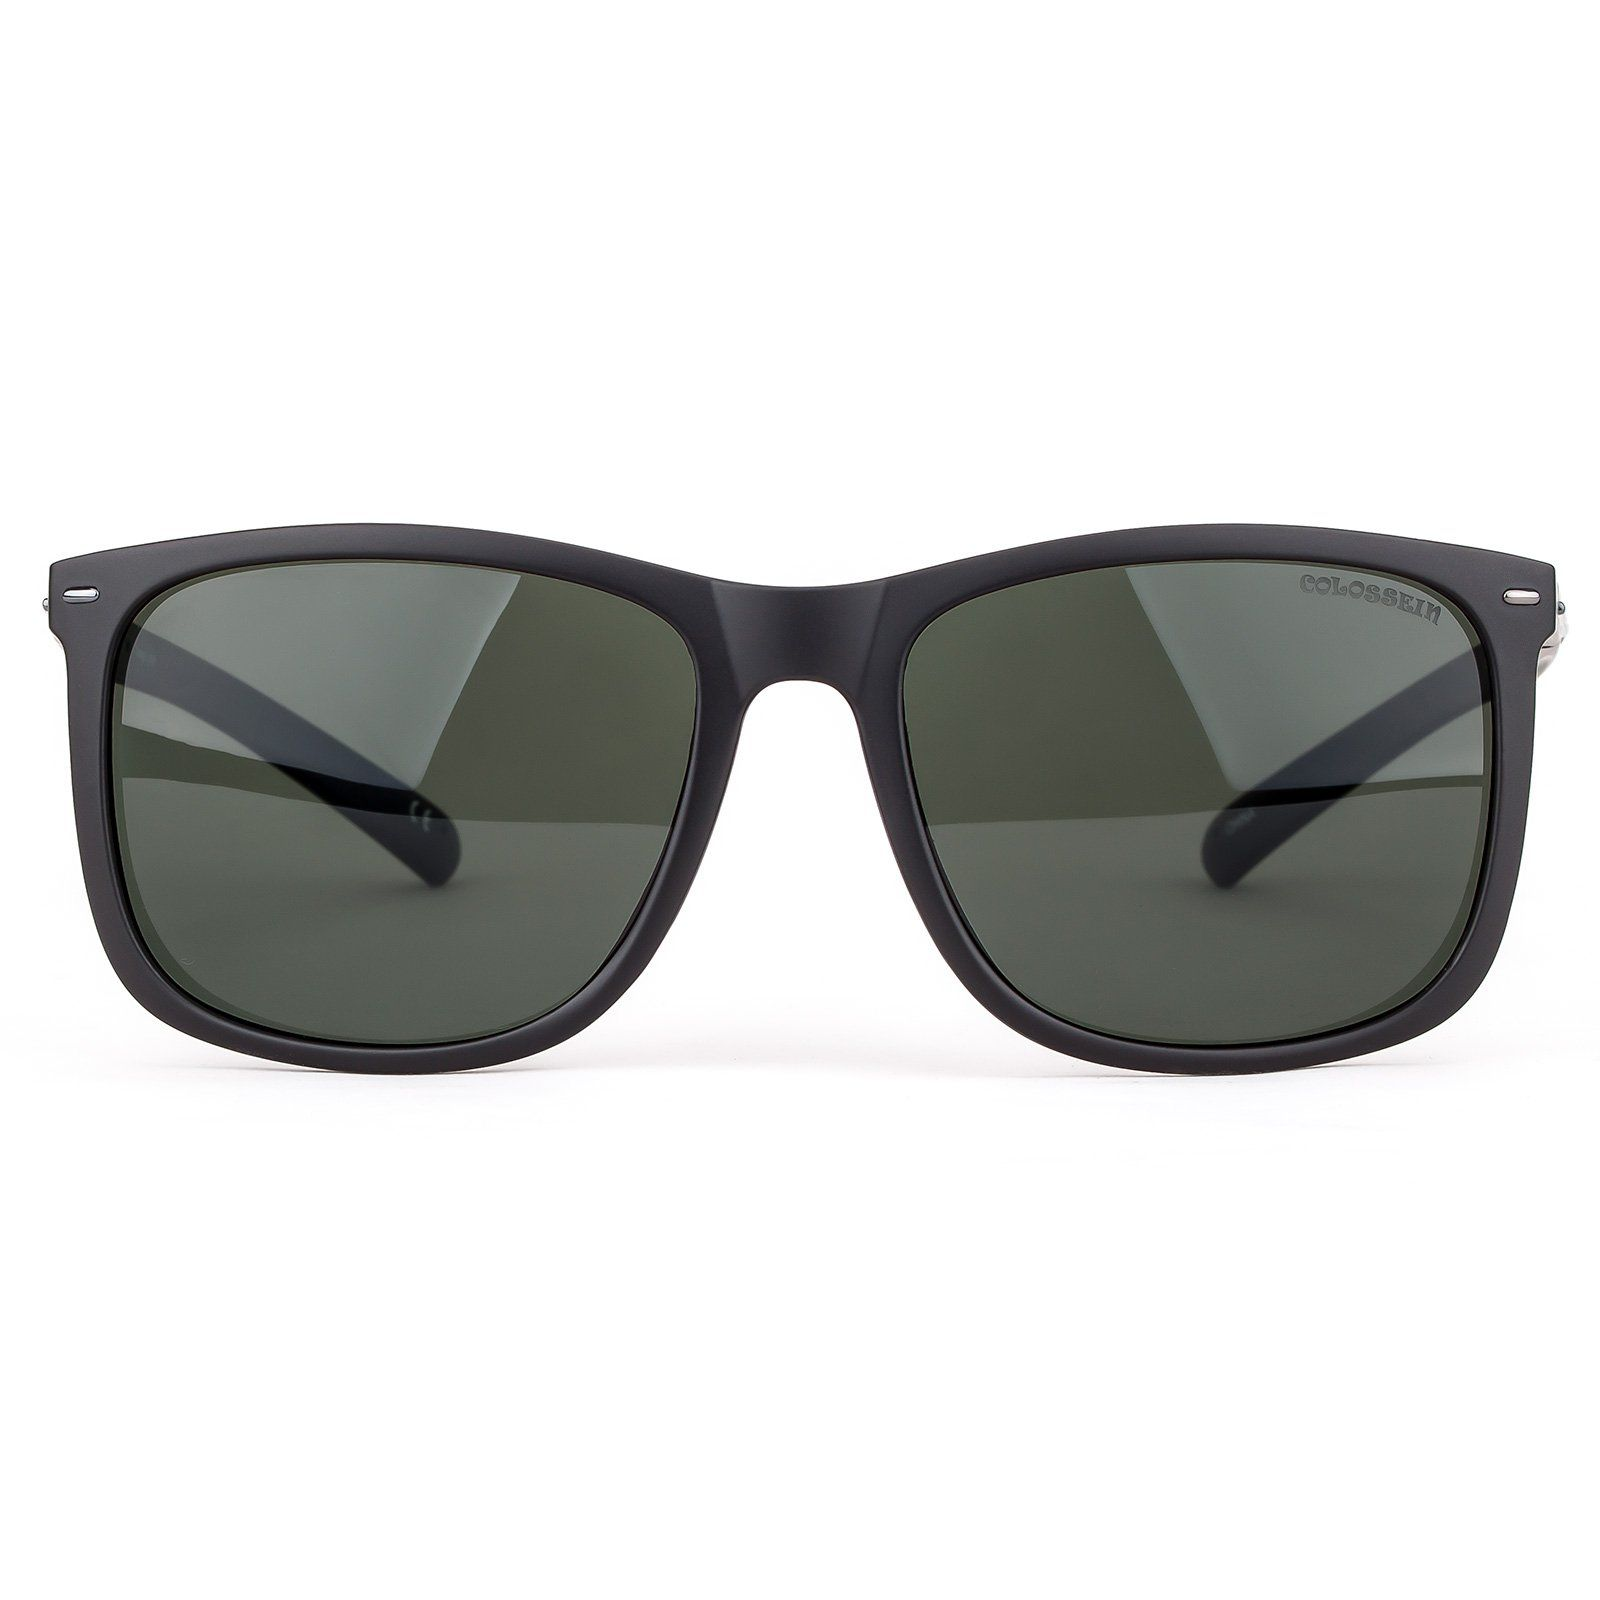 Polarized Sunglasses For Men TR90 With Silicon Materials